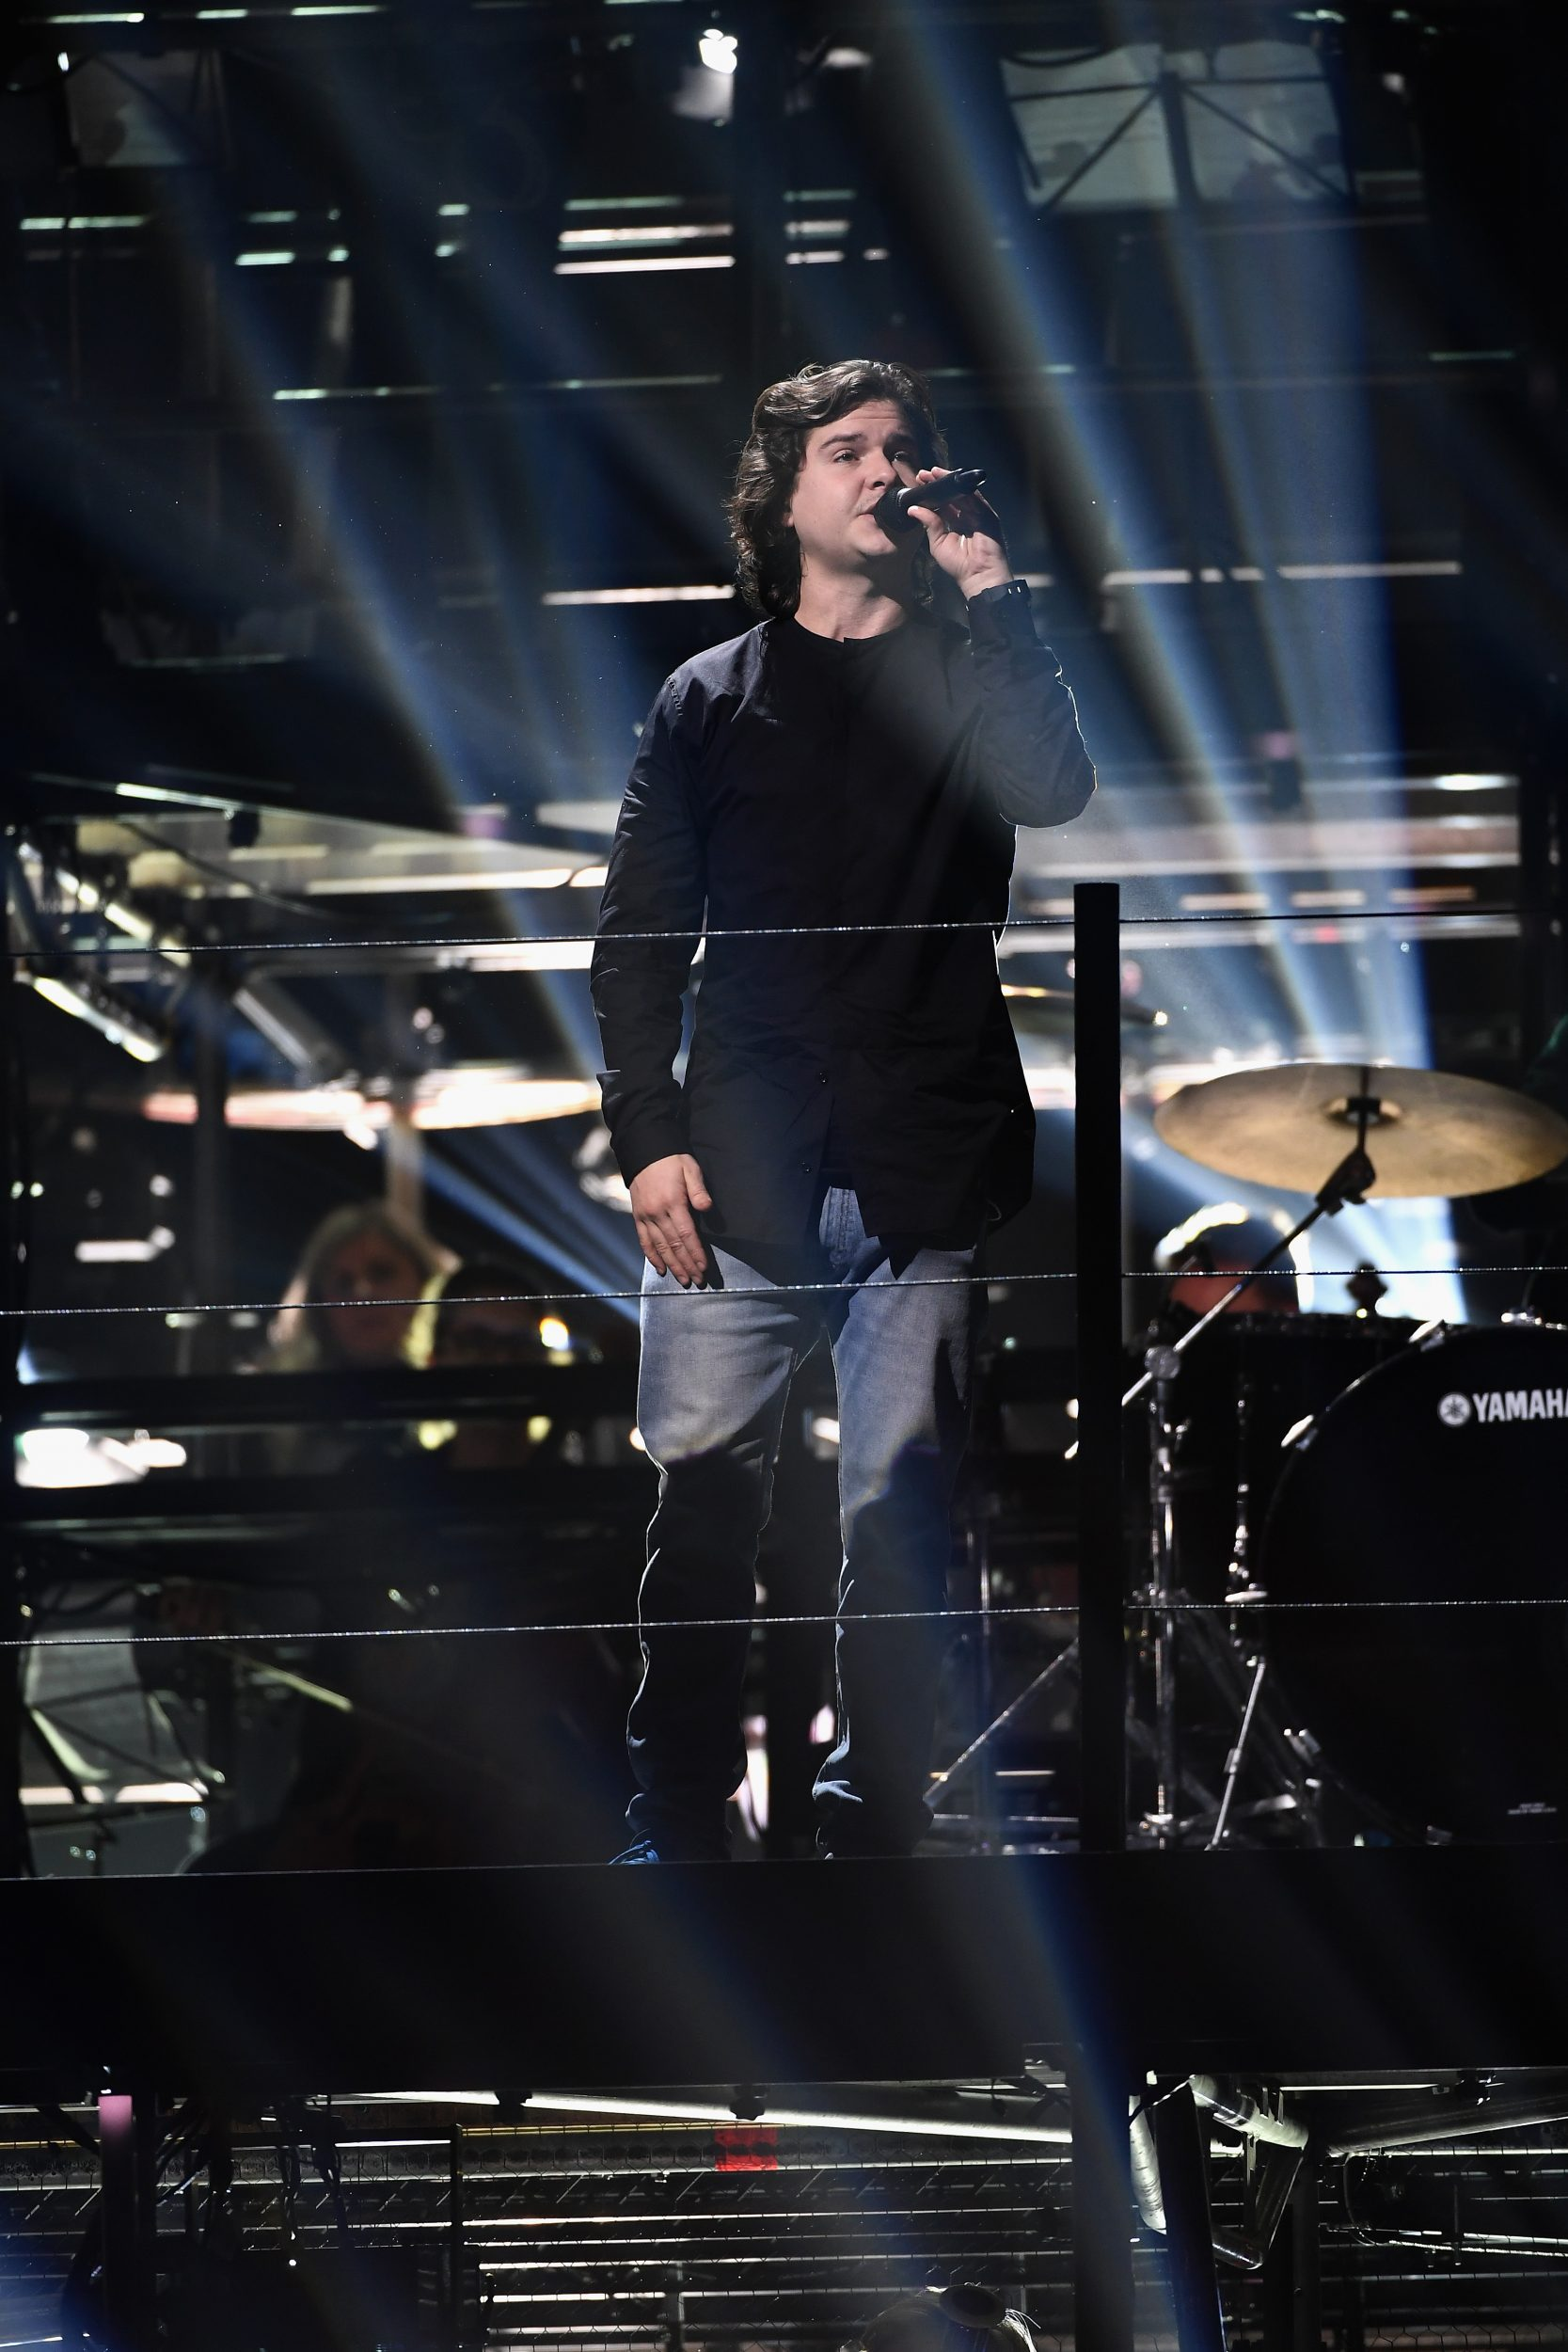 ROTTERDAM, NETHERLANDS - NOVEMBER 05:  Lead singer Lukas Forchhammer from Lukas Graham during open rehearsal ahead of the MTV Europe Music Awards 2016 on November 5, 2016 in Rotterdam, Netherlands. The MTV Europe Music Awards 2016 is held on November 6, 2016.  (Photo by Ian Gavan/MTV 2016/Getty Images for MTV) *** Local Caption *** Lukas Forchhammer